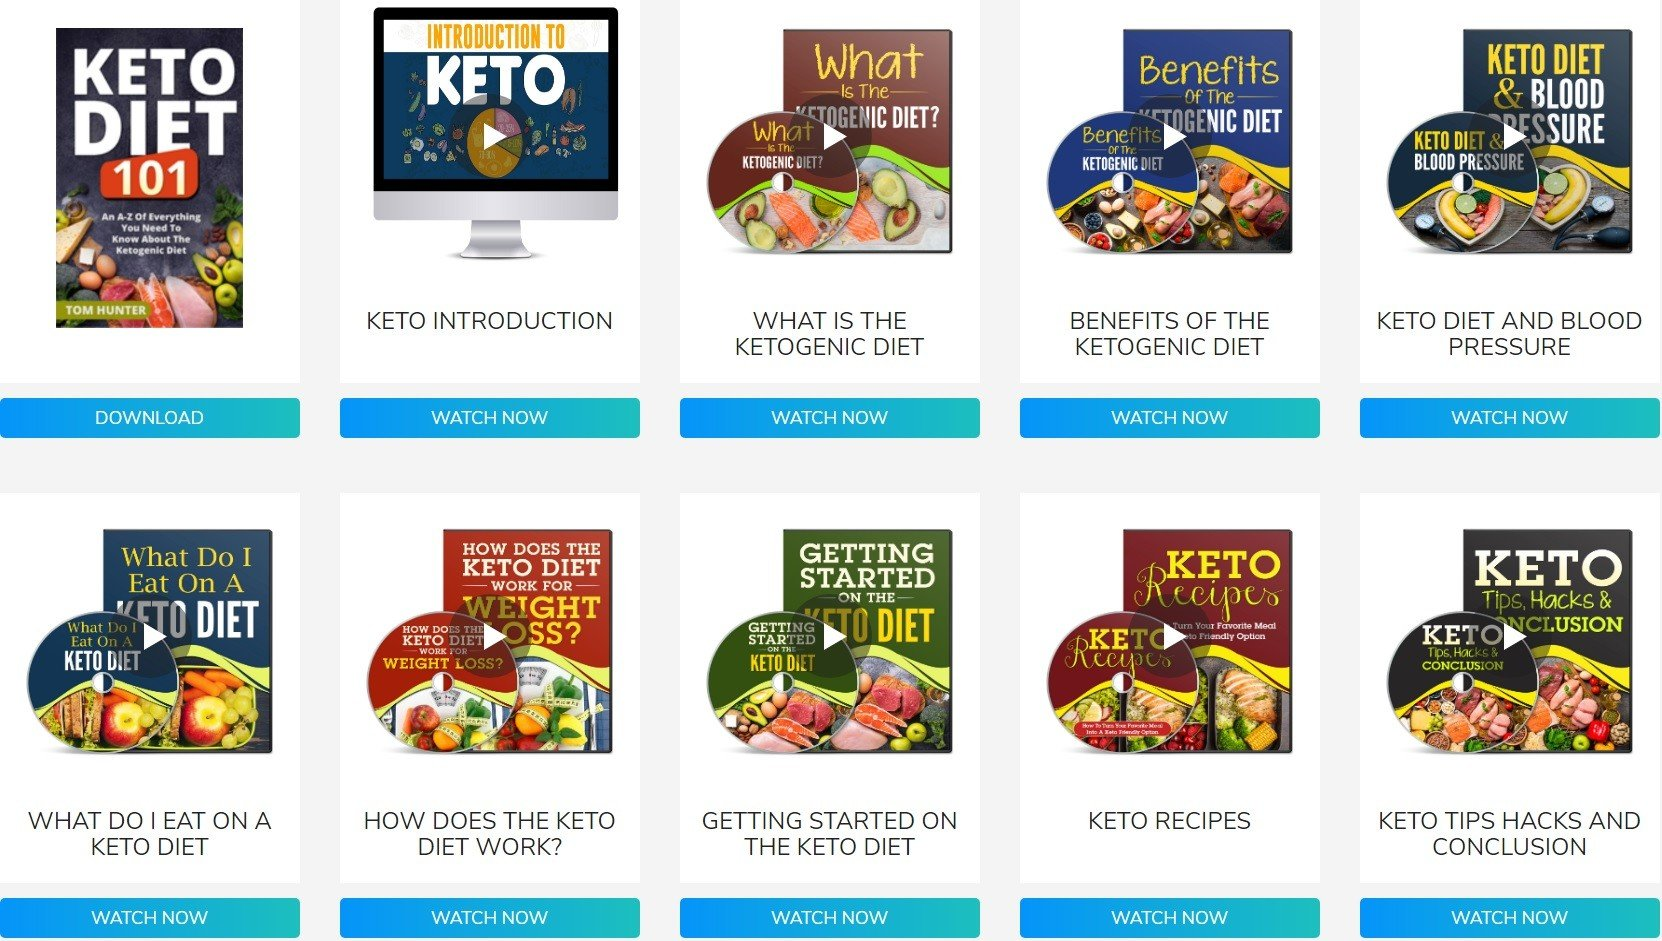 Plan Custom Keto Diet Black Friday Deals April  2020